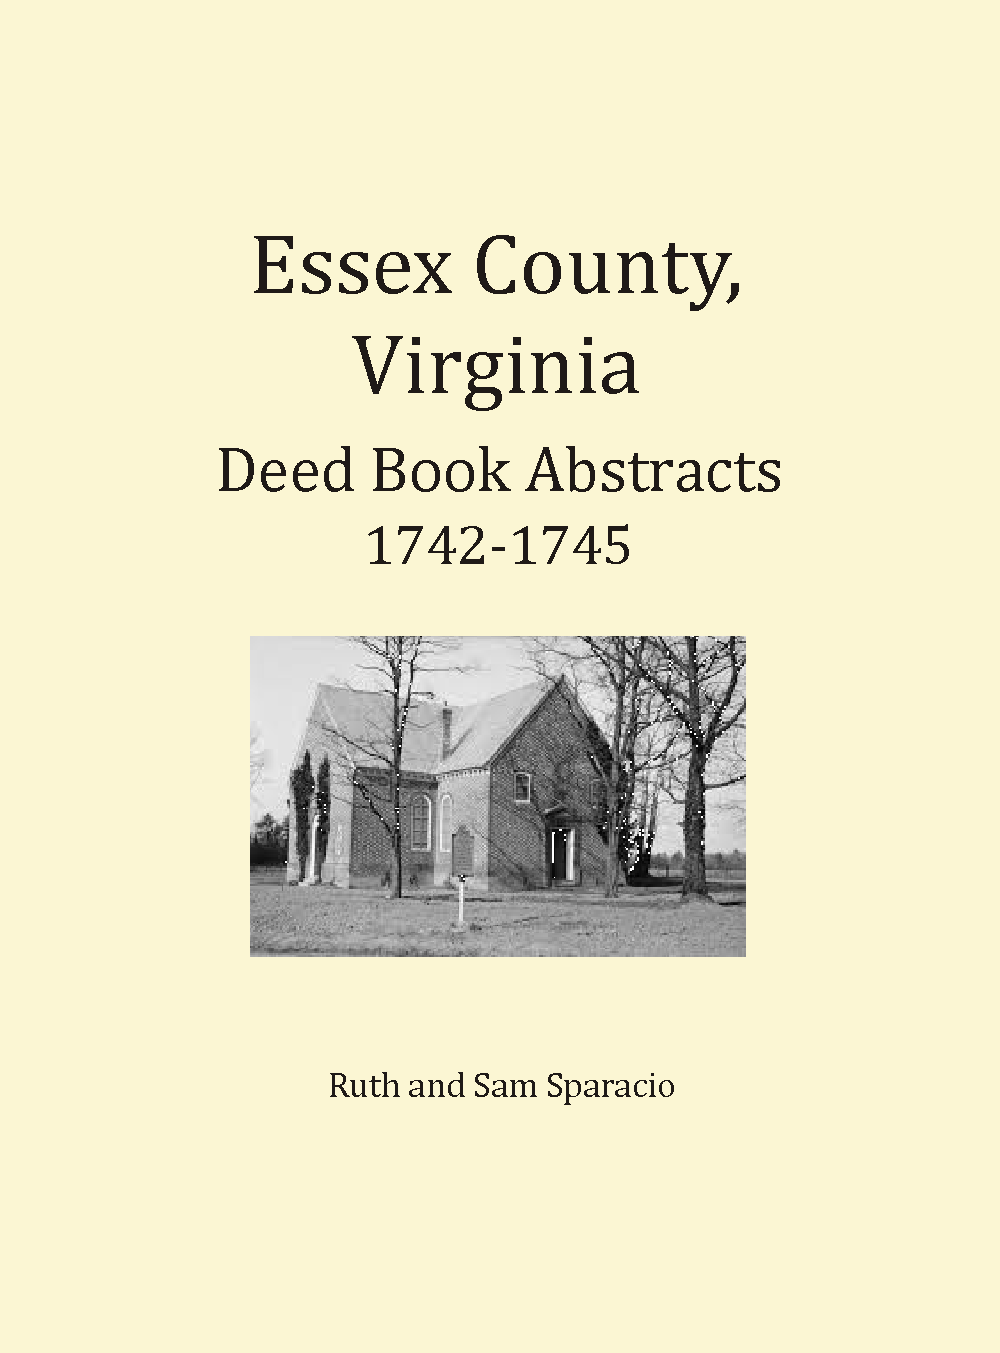 Essex County, Virginia Deed Book Abstracts 1742-1745